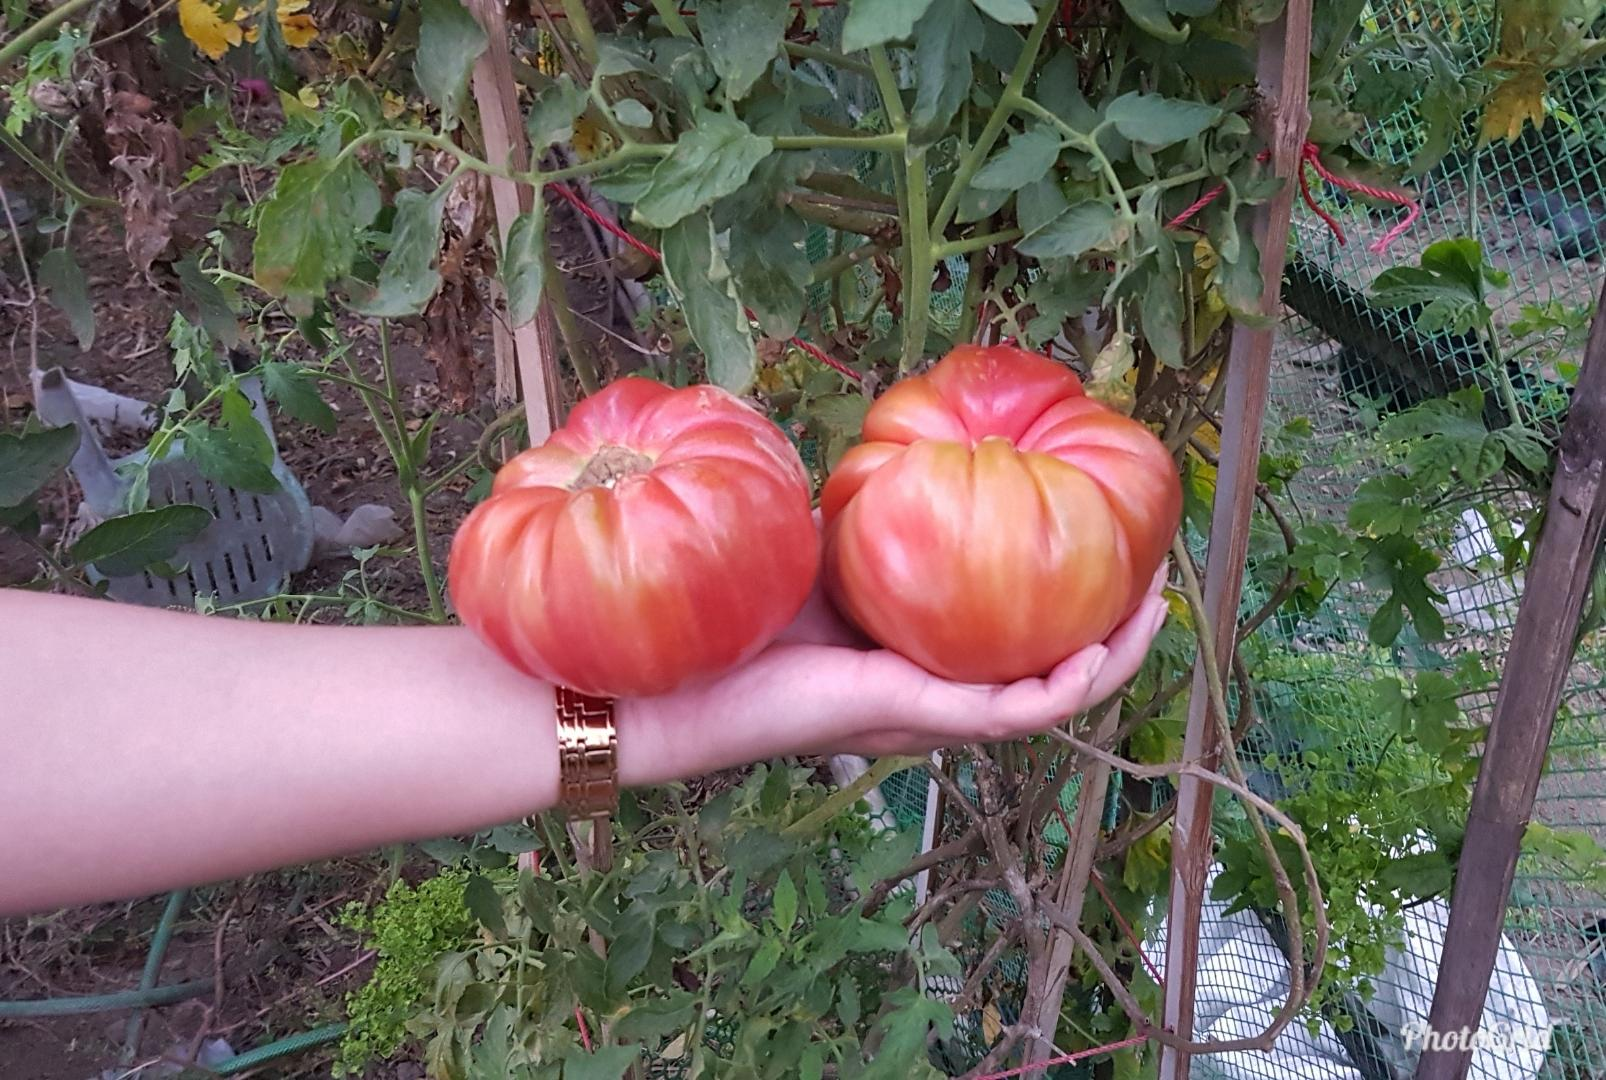 Giant Tomato Seeds By Flora And Fauna.